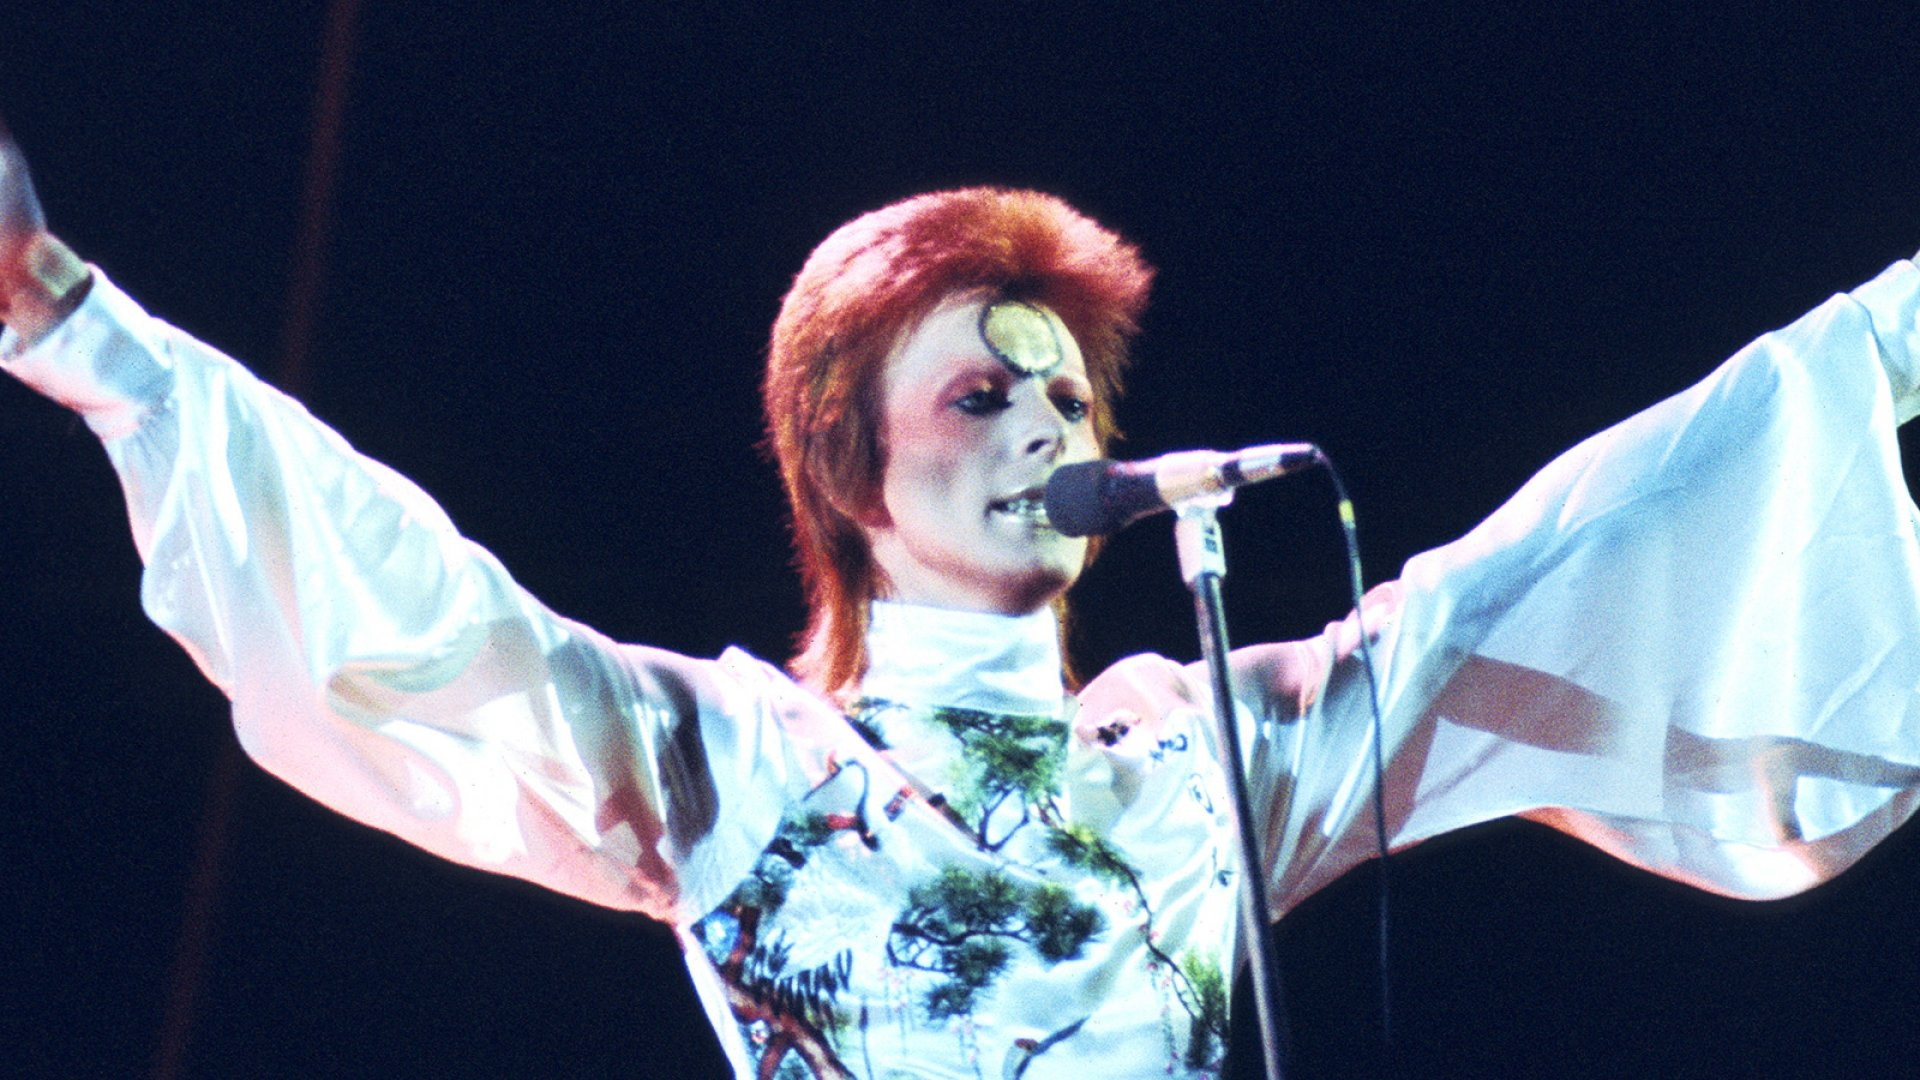 David Bowie on stage as alter ego Ziggy Stardust in 1973.